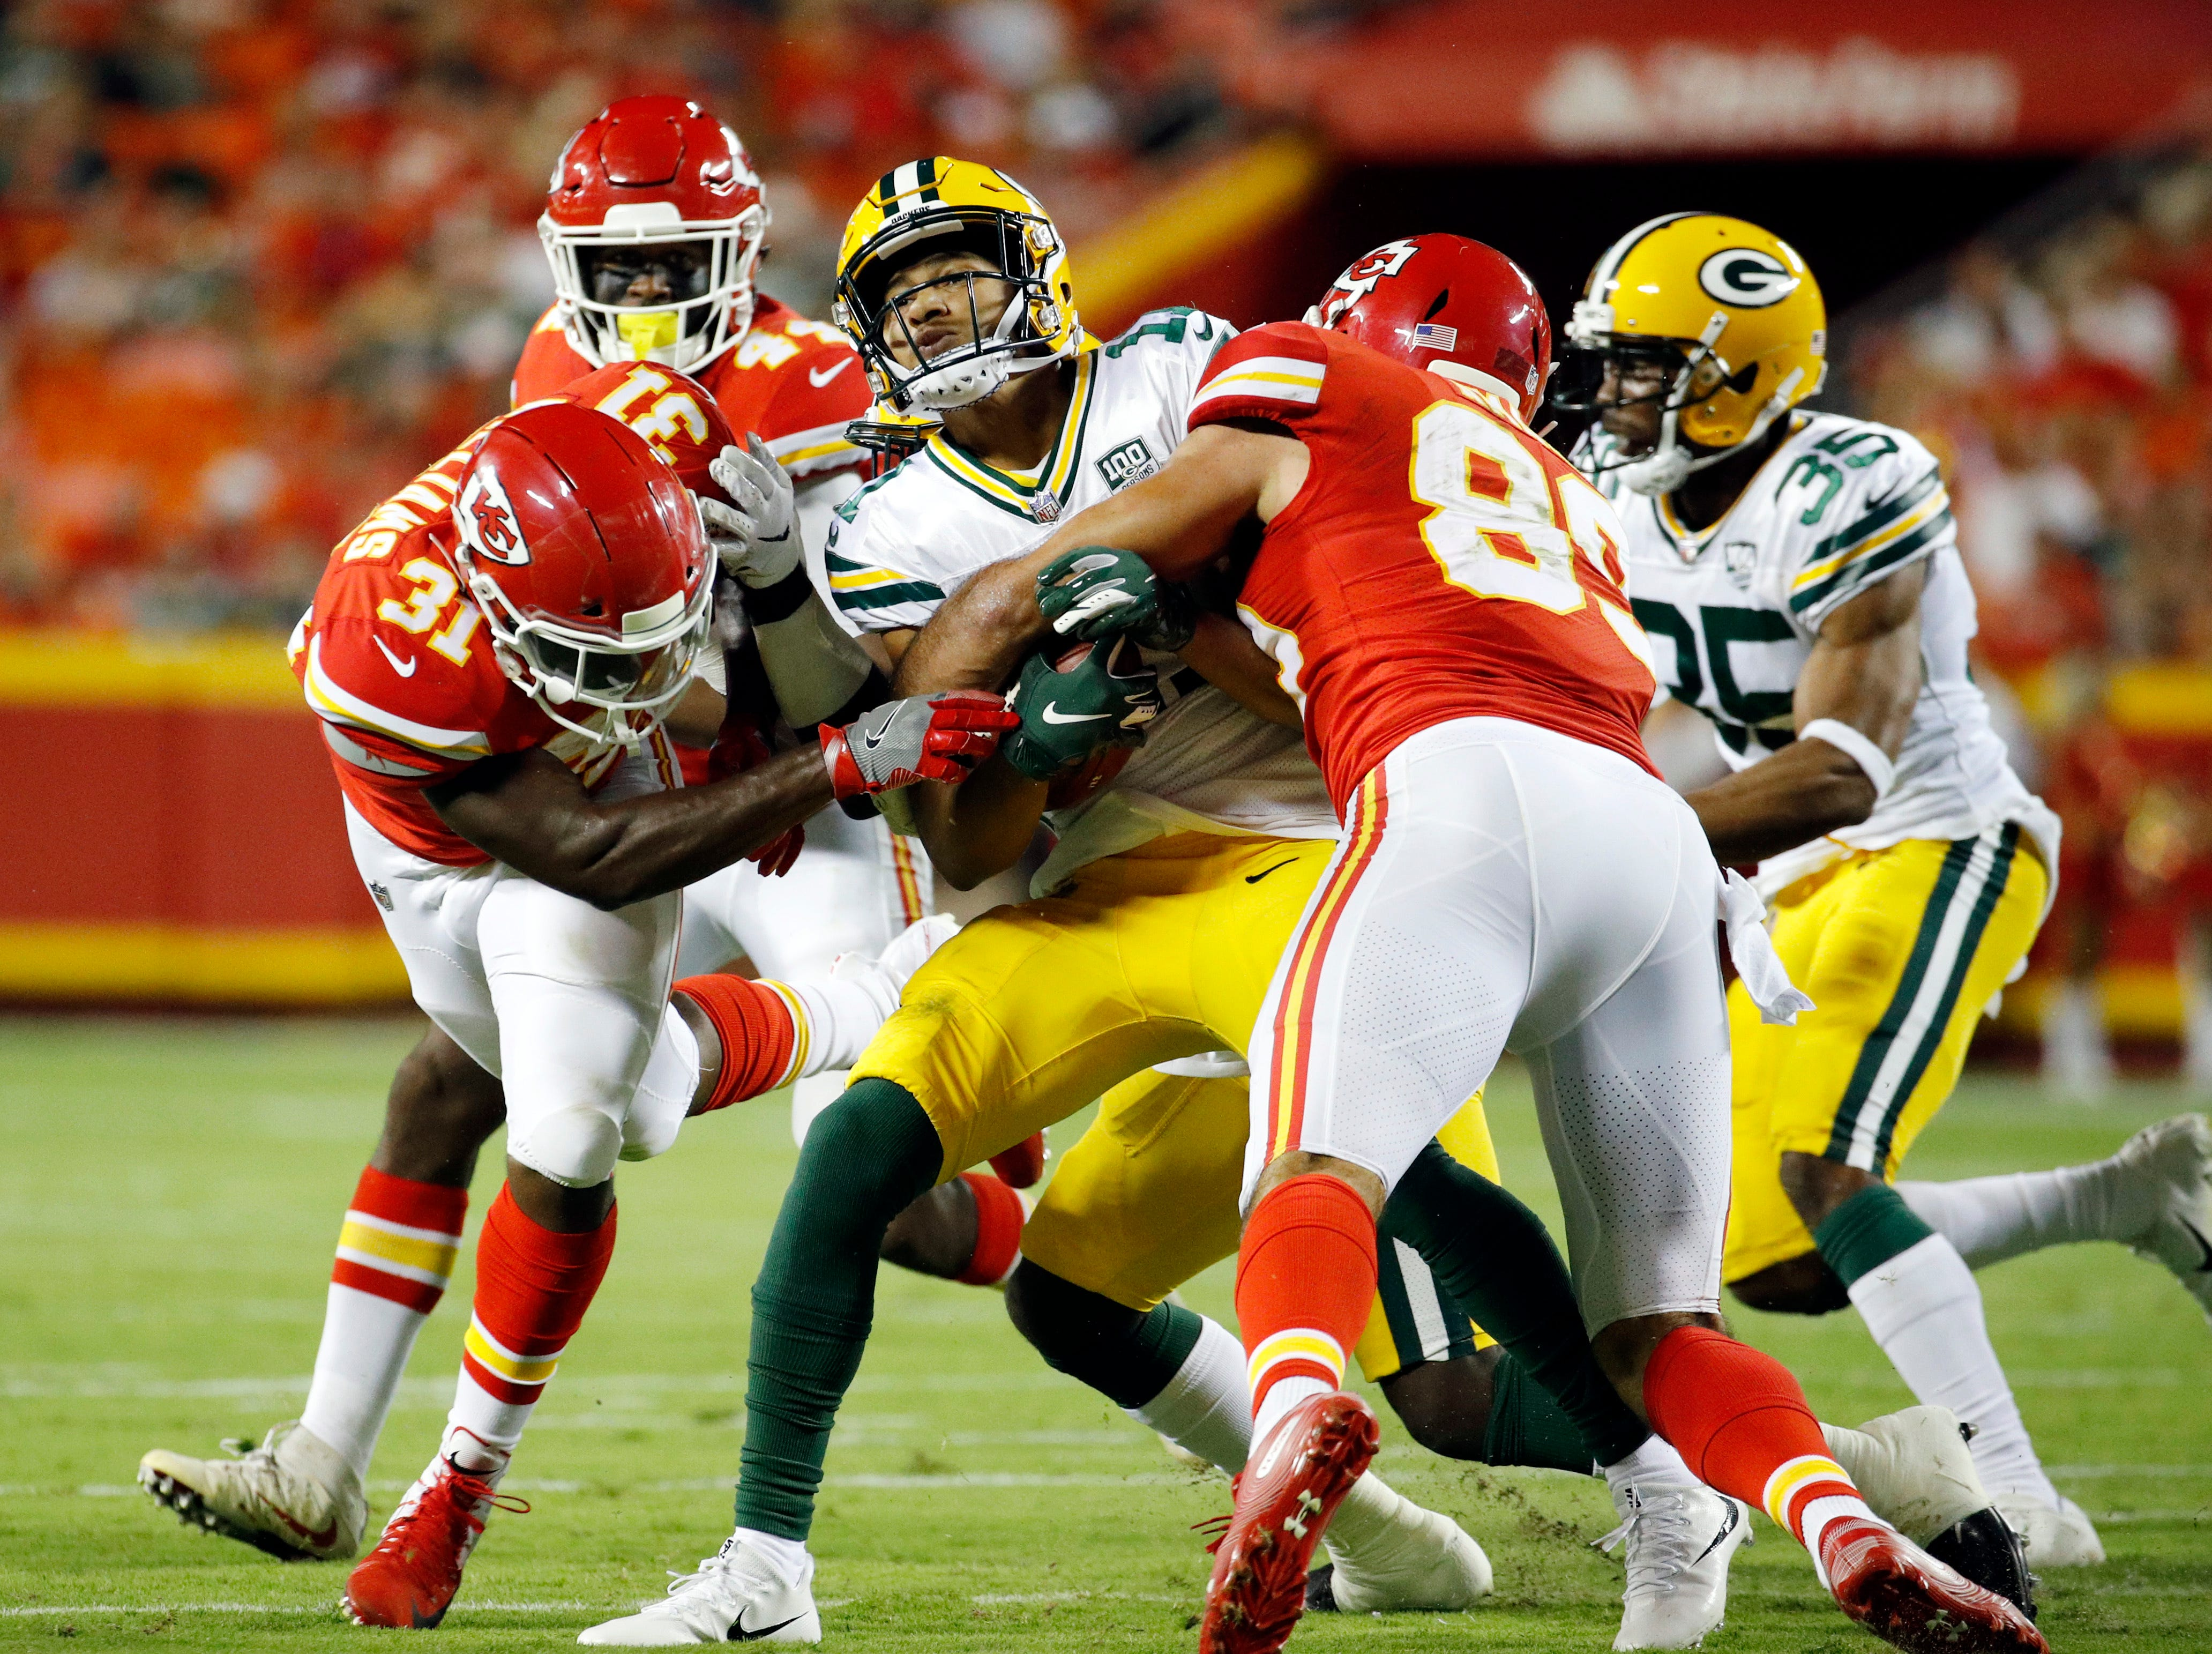 Green Bay Packers wide receiver Trevor Davis, center, is tackled by Kansas City Chiefs running back Darrel Williams (31) and Jace Amaro (89) during the first half of an NFL preseason football game in Kansas City, Mo., Thursday, Aug. 30, 2018.